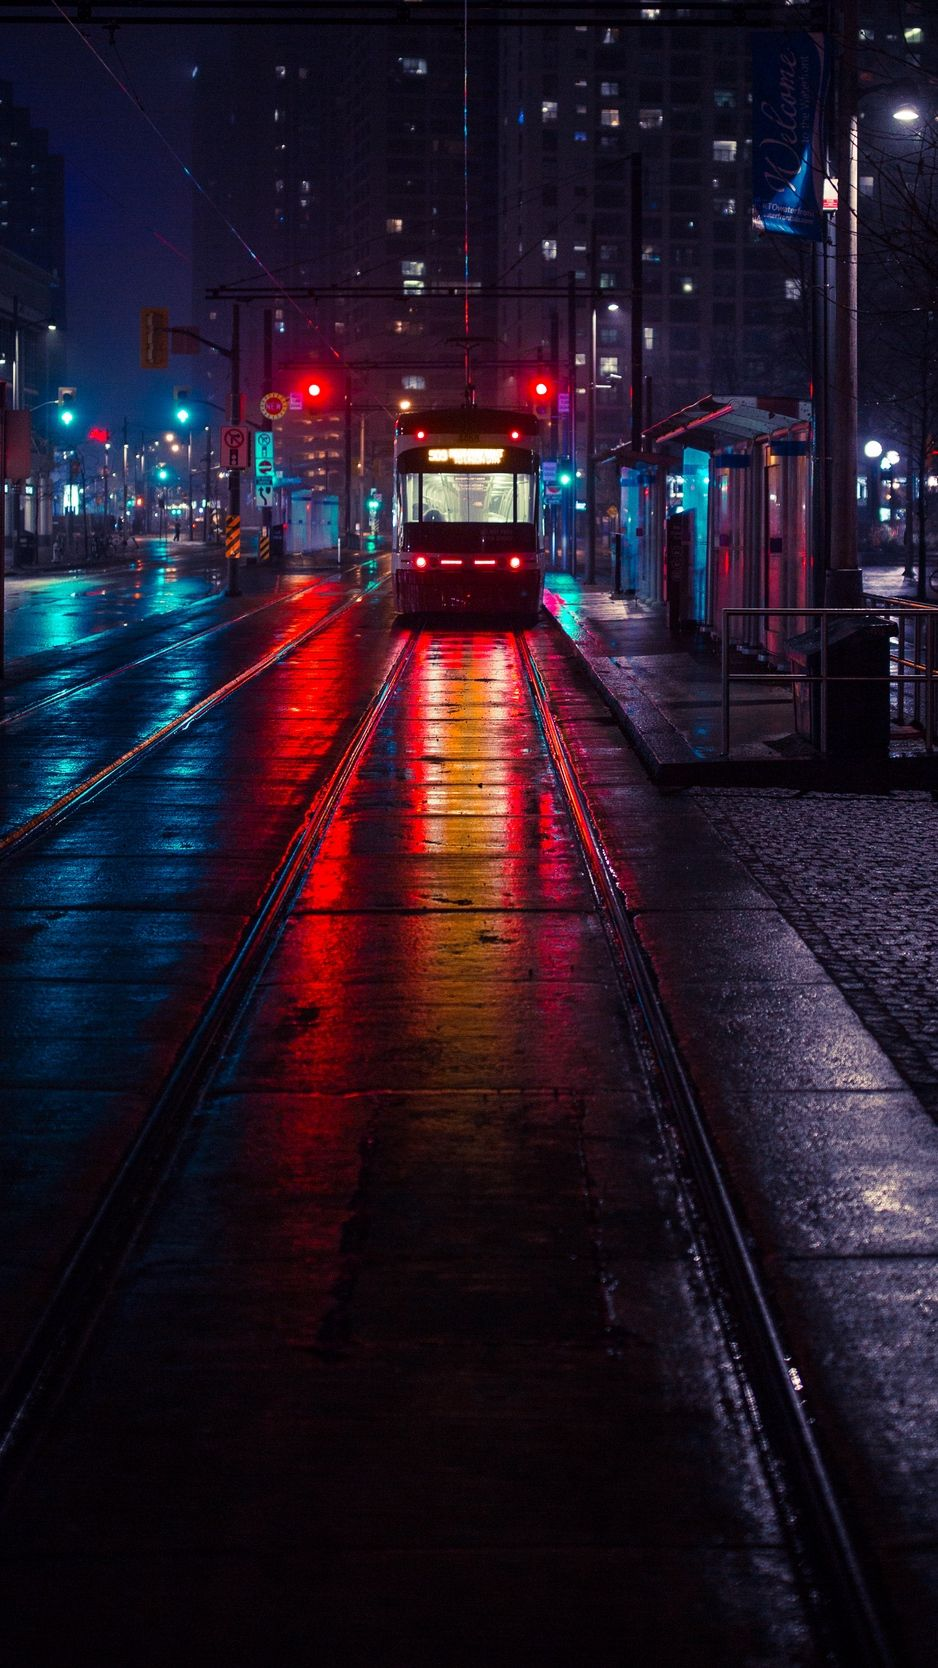 Name Iphone X Wallpaper 4k Resolution 938x1688 Category Bus On